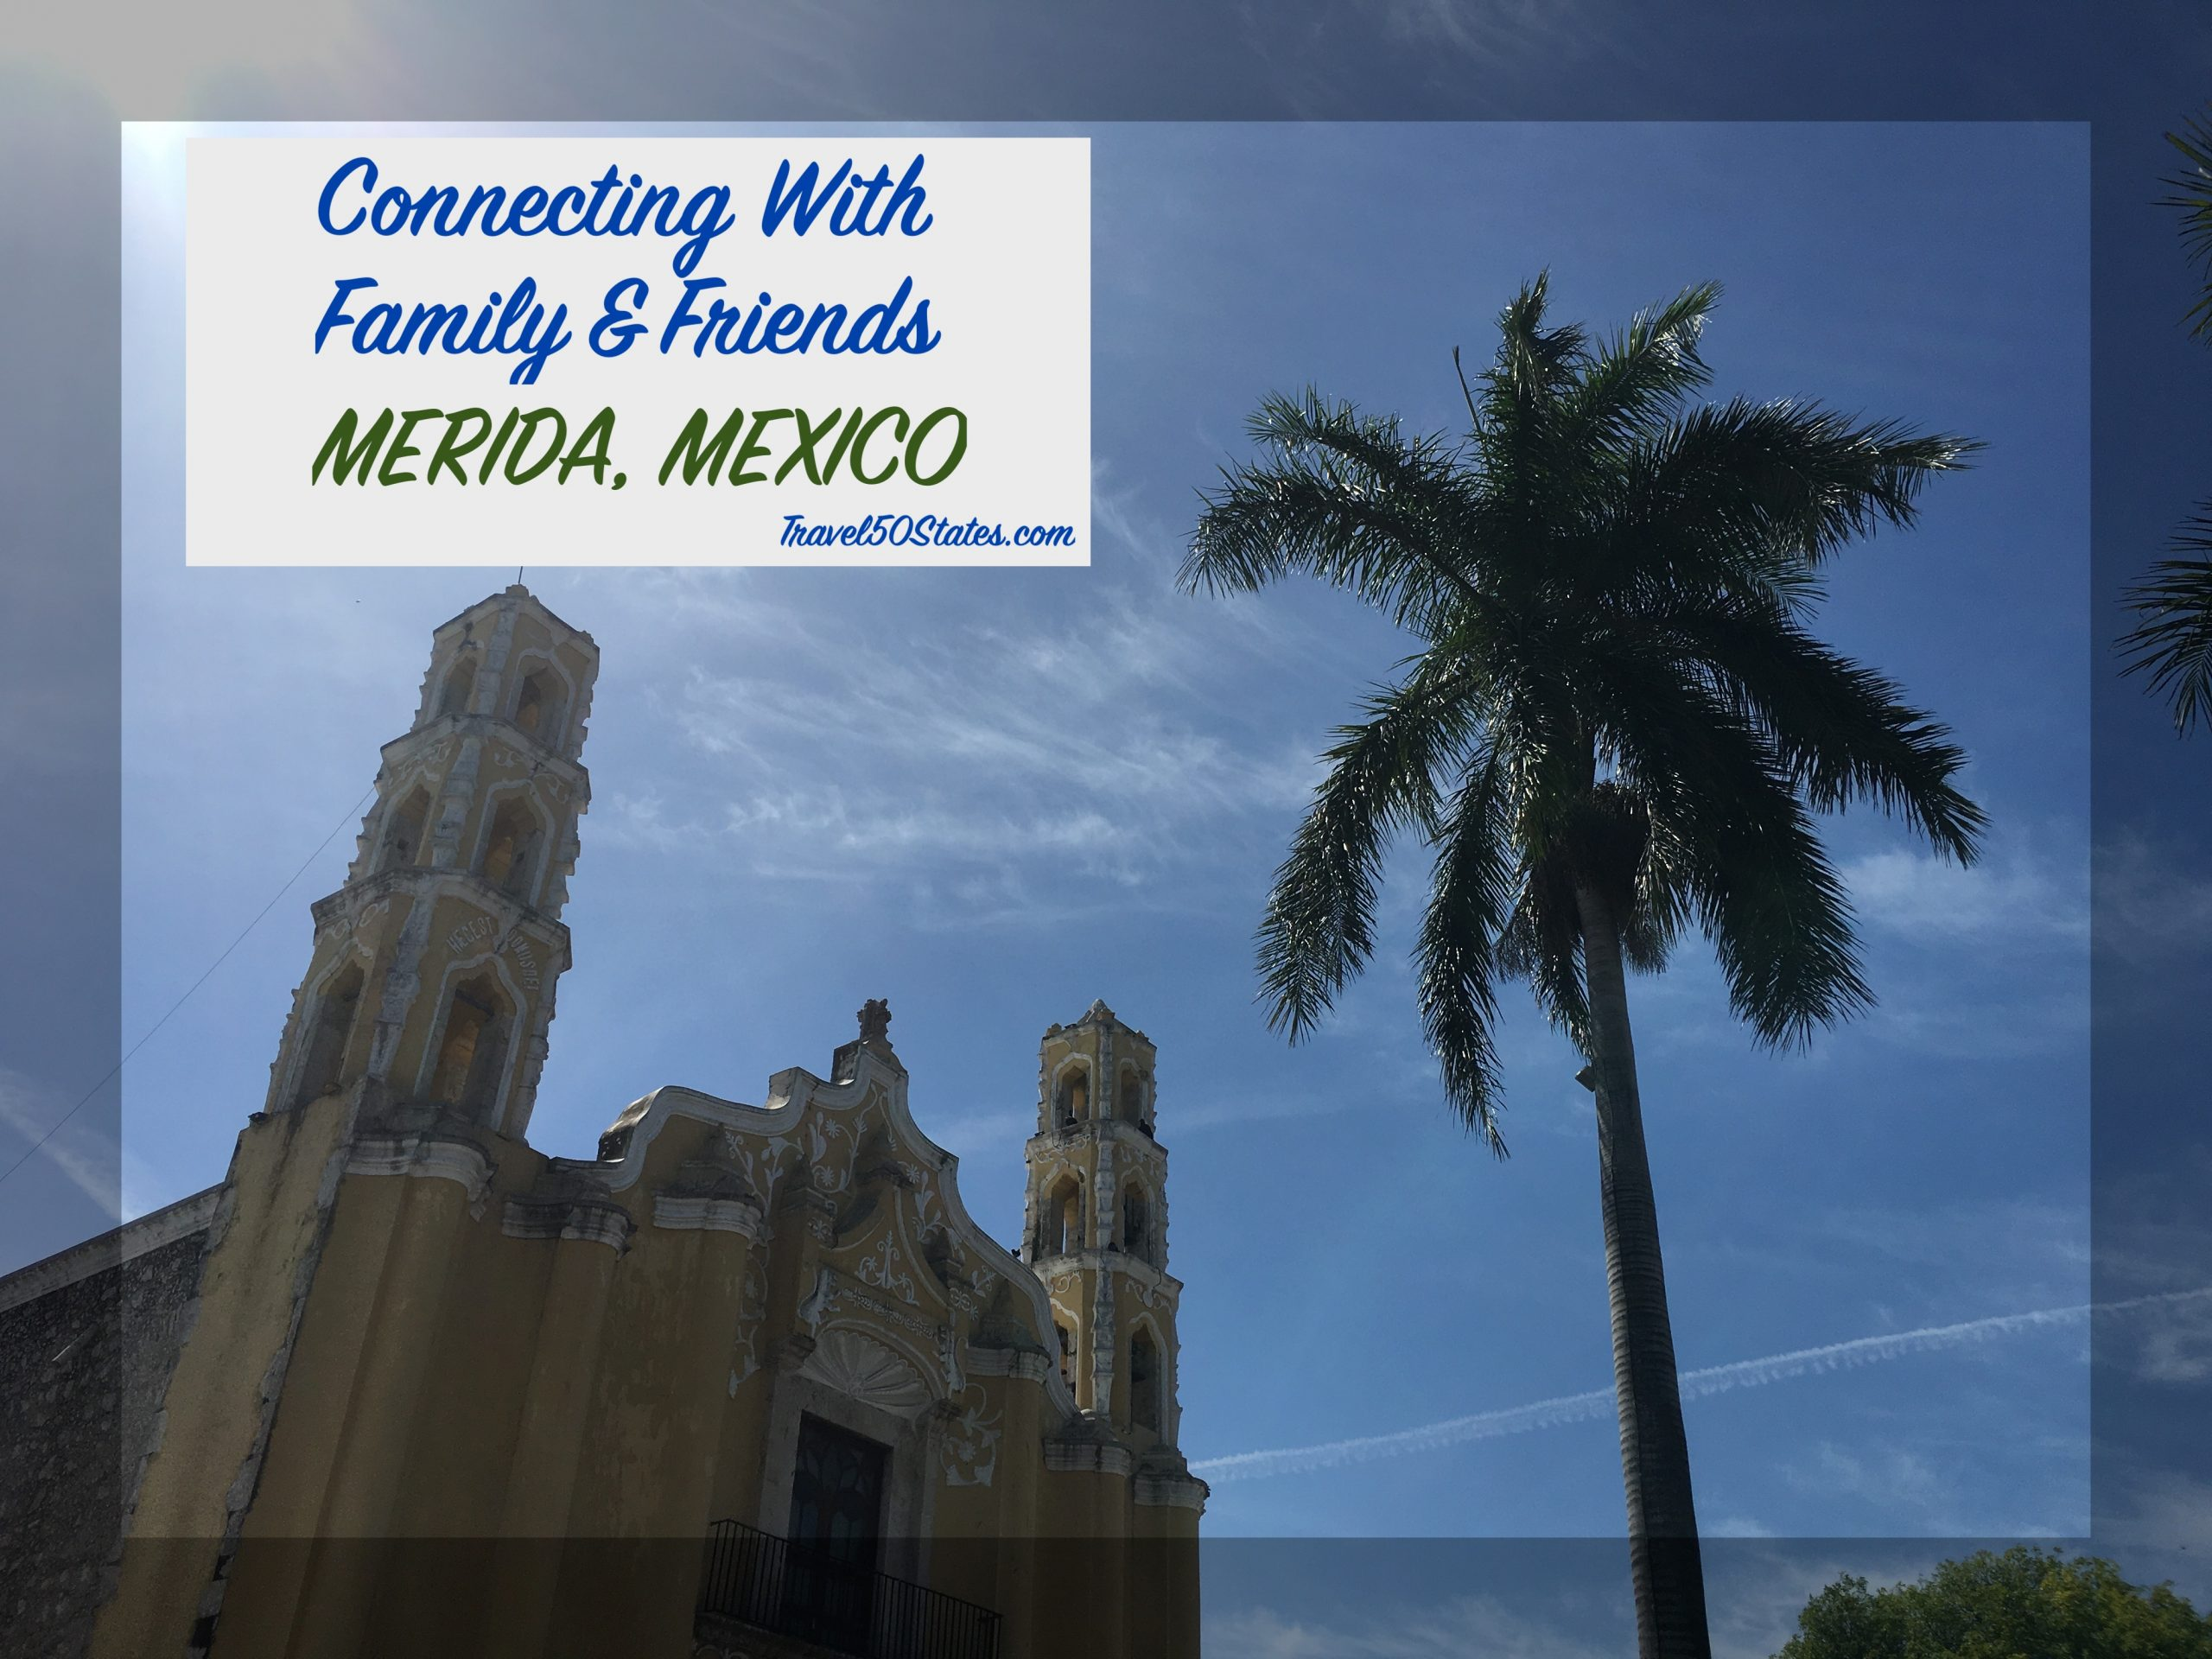 Connecting with Family & Friends in Merida